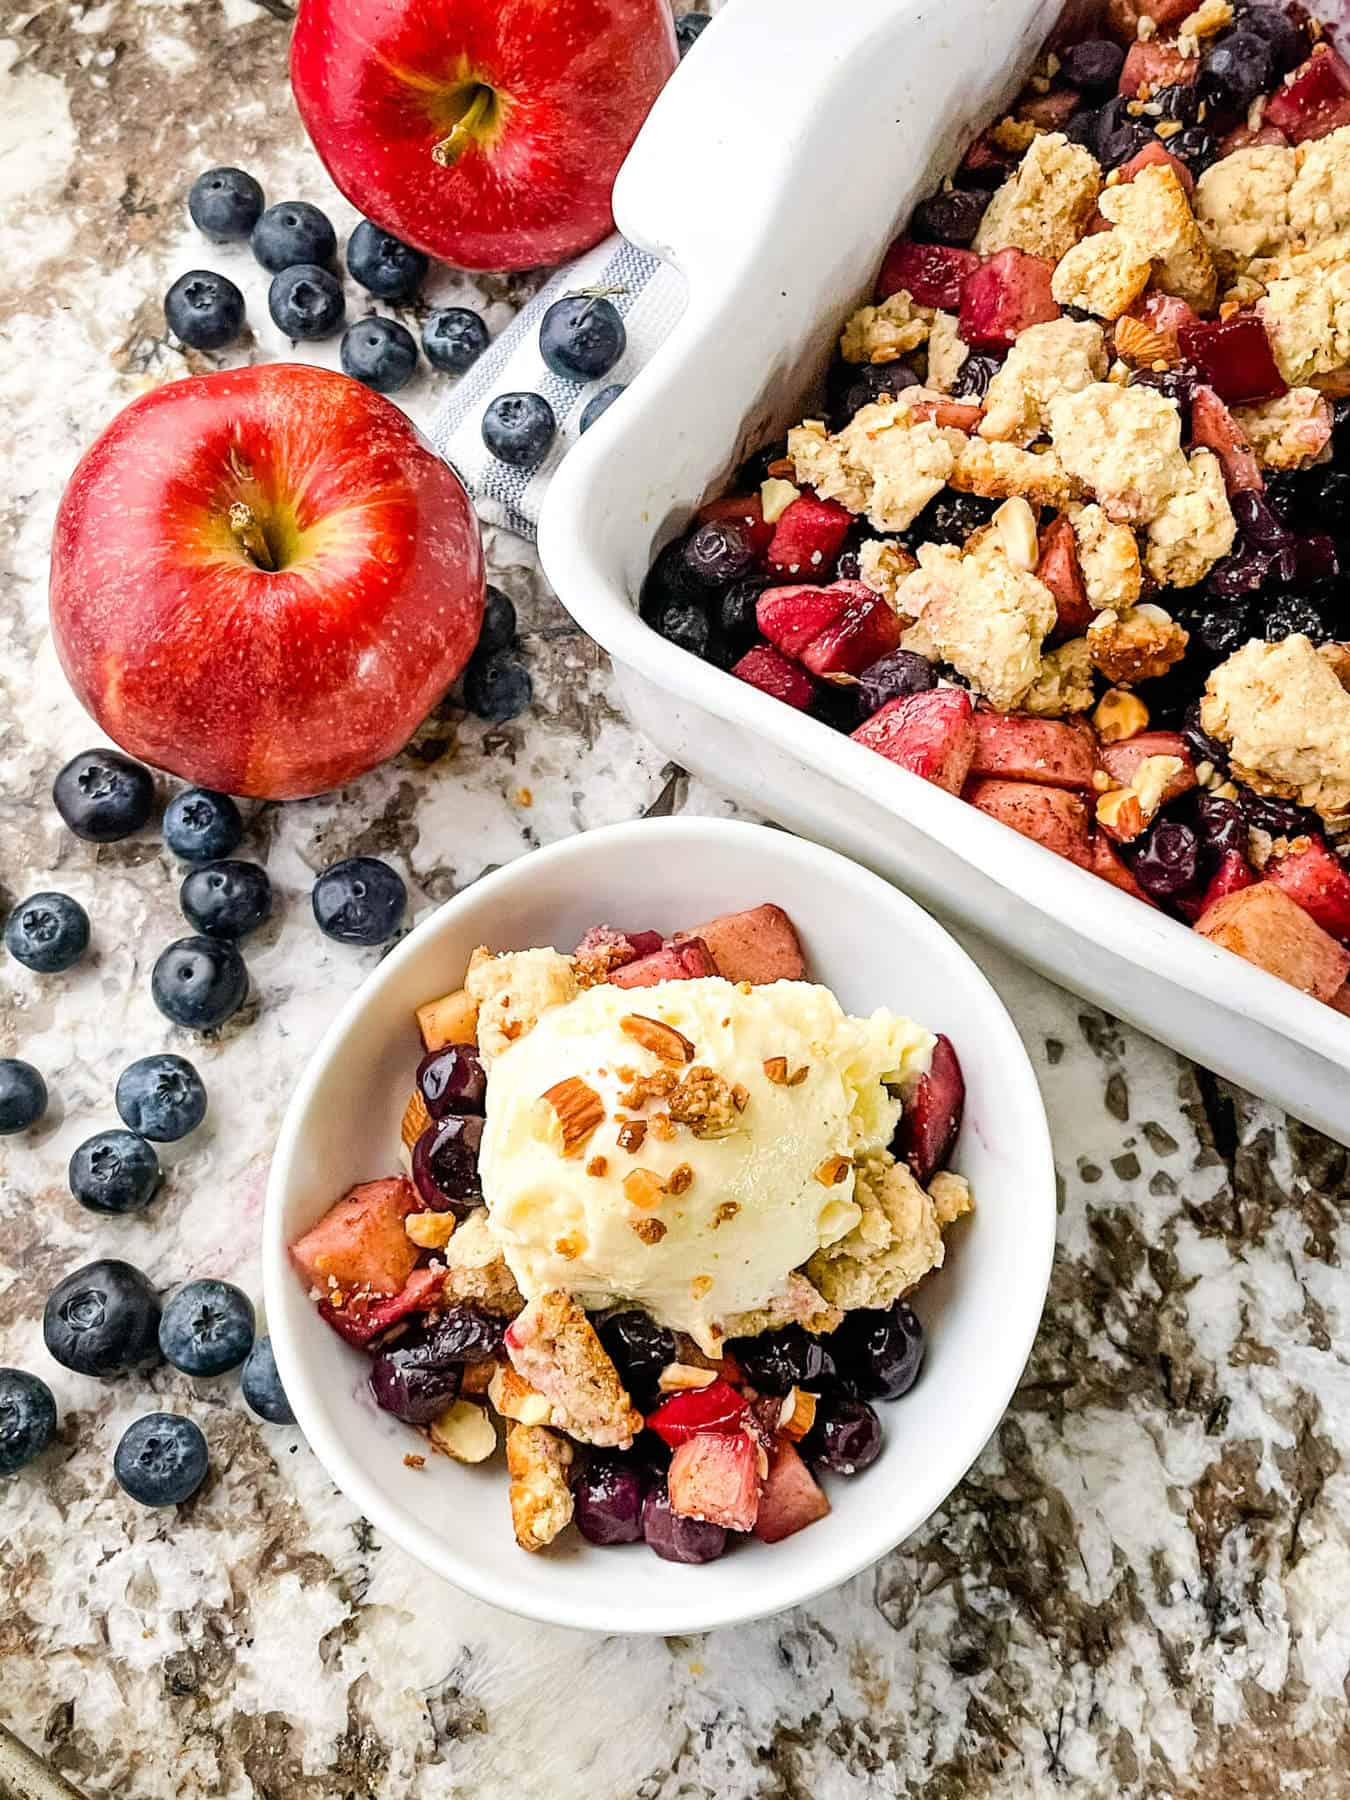 A serving of Apple and Blueberry Crumble in a bowl surrounded by blueberries and the serving dish nearby